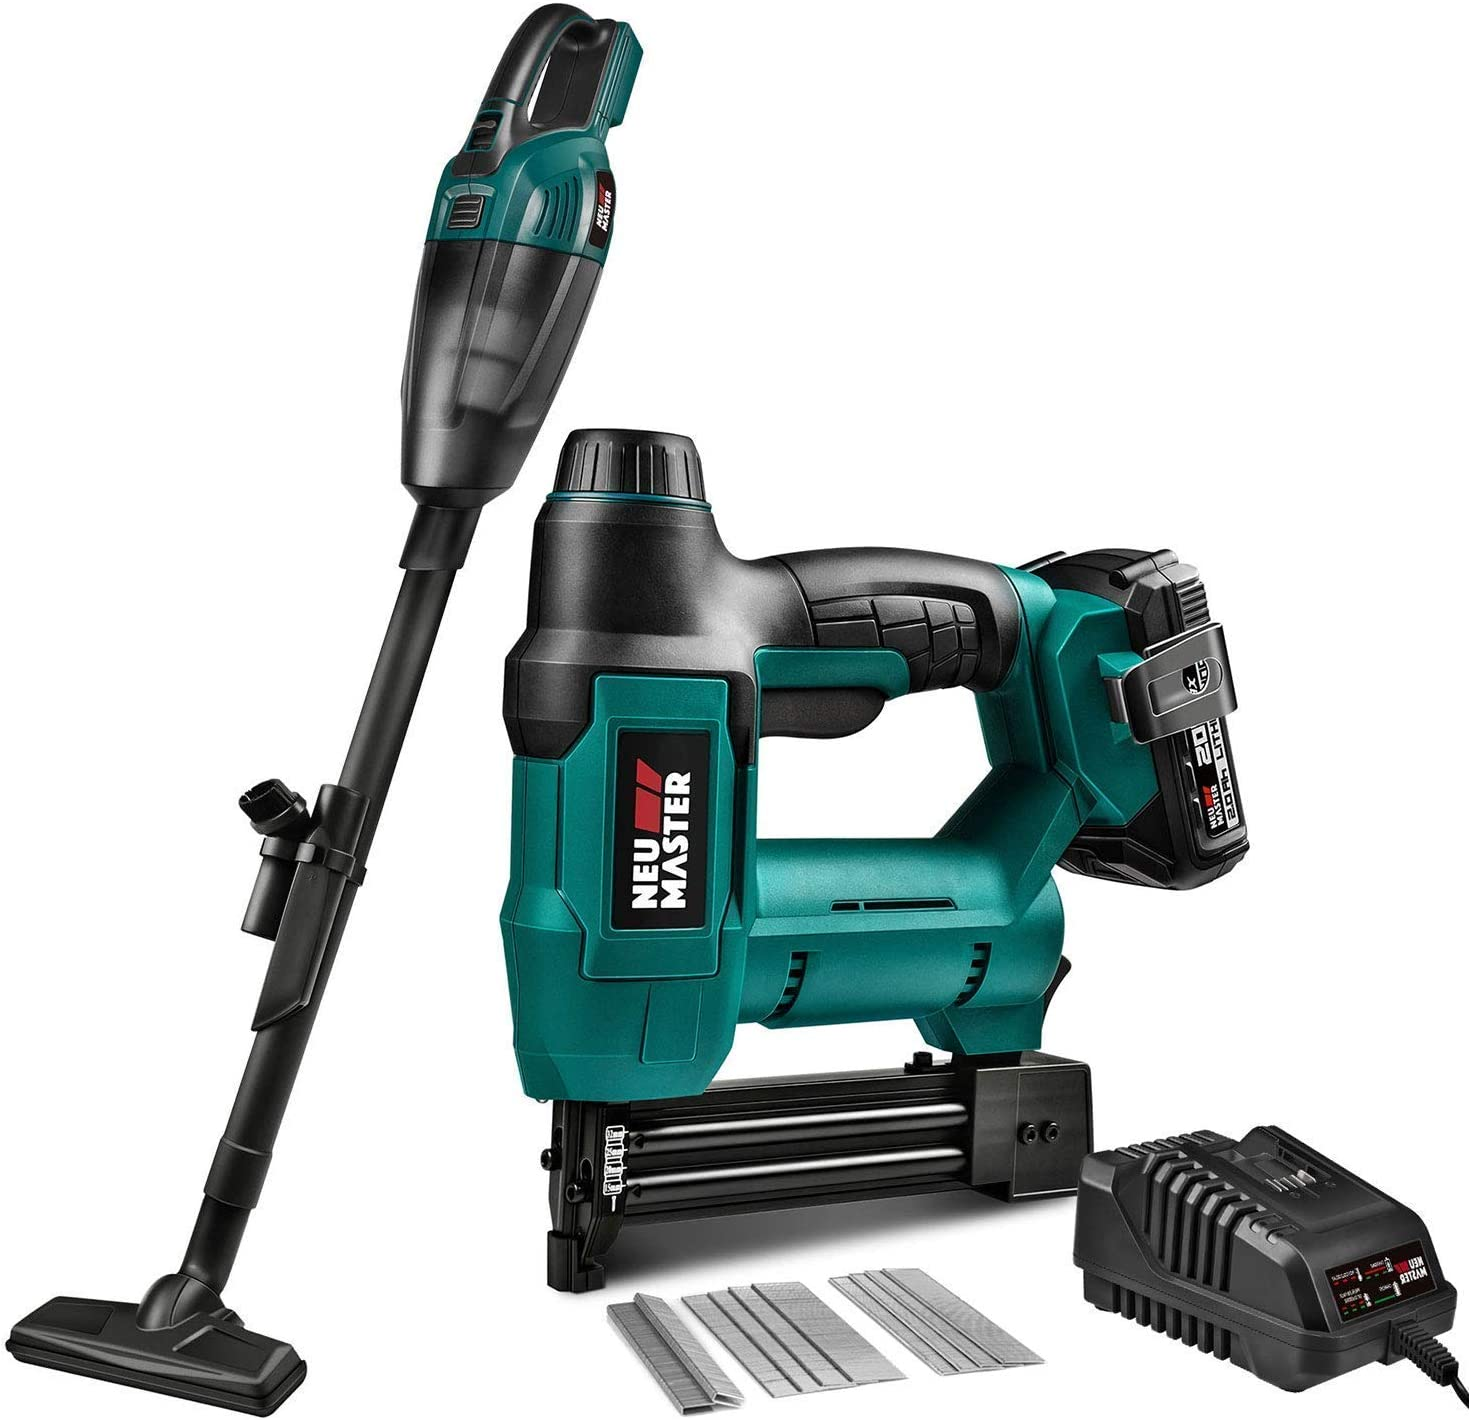 NEU MASTER Cordless Rechargeable Brad Nailer (2.0Ah Battery and Charger Included) and Cordless Vacuum Cleaner (Tool Only)